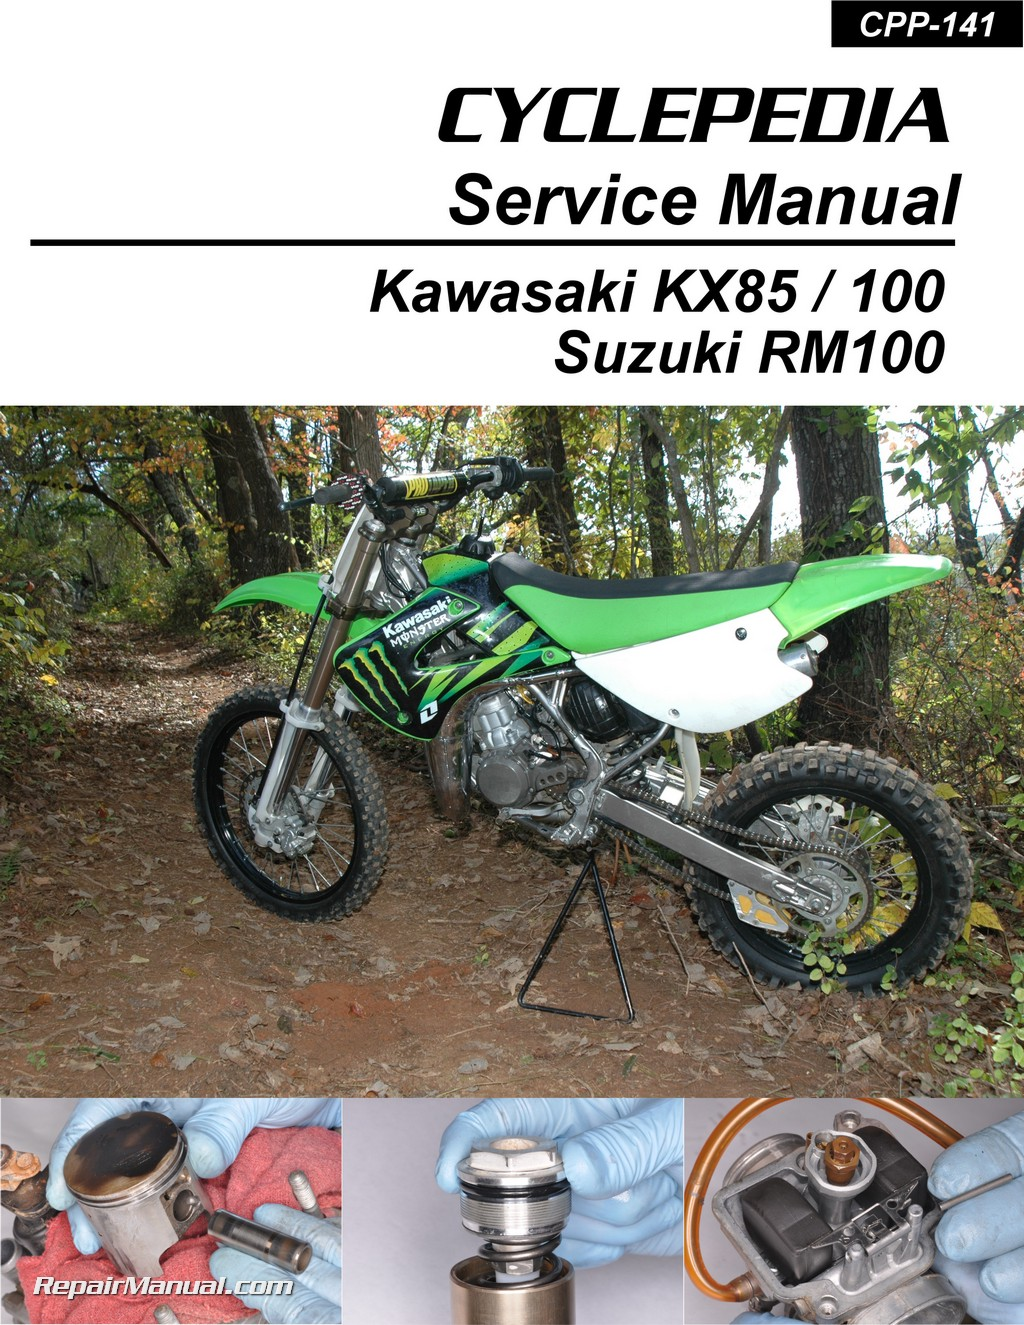 Service Repair Manual Prirucnici Motocikle Kn Slika in addition E Acf D F E C D Ab also Gsx R as well Kawasaki Kx Kx Suzuki Rm Cyclepedia Printed Motorcycle Service Manual besides Katana. on suzuki atv wiring diagrams